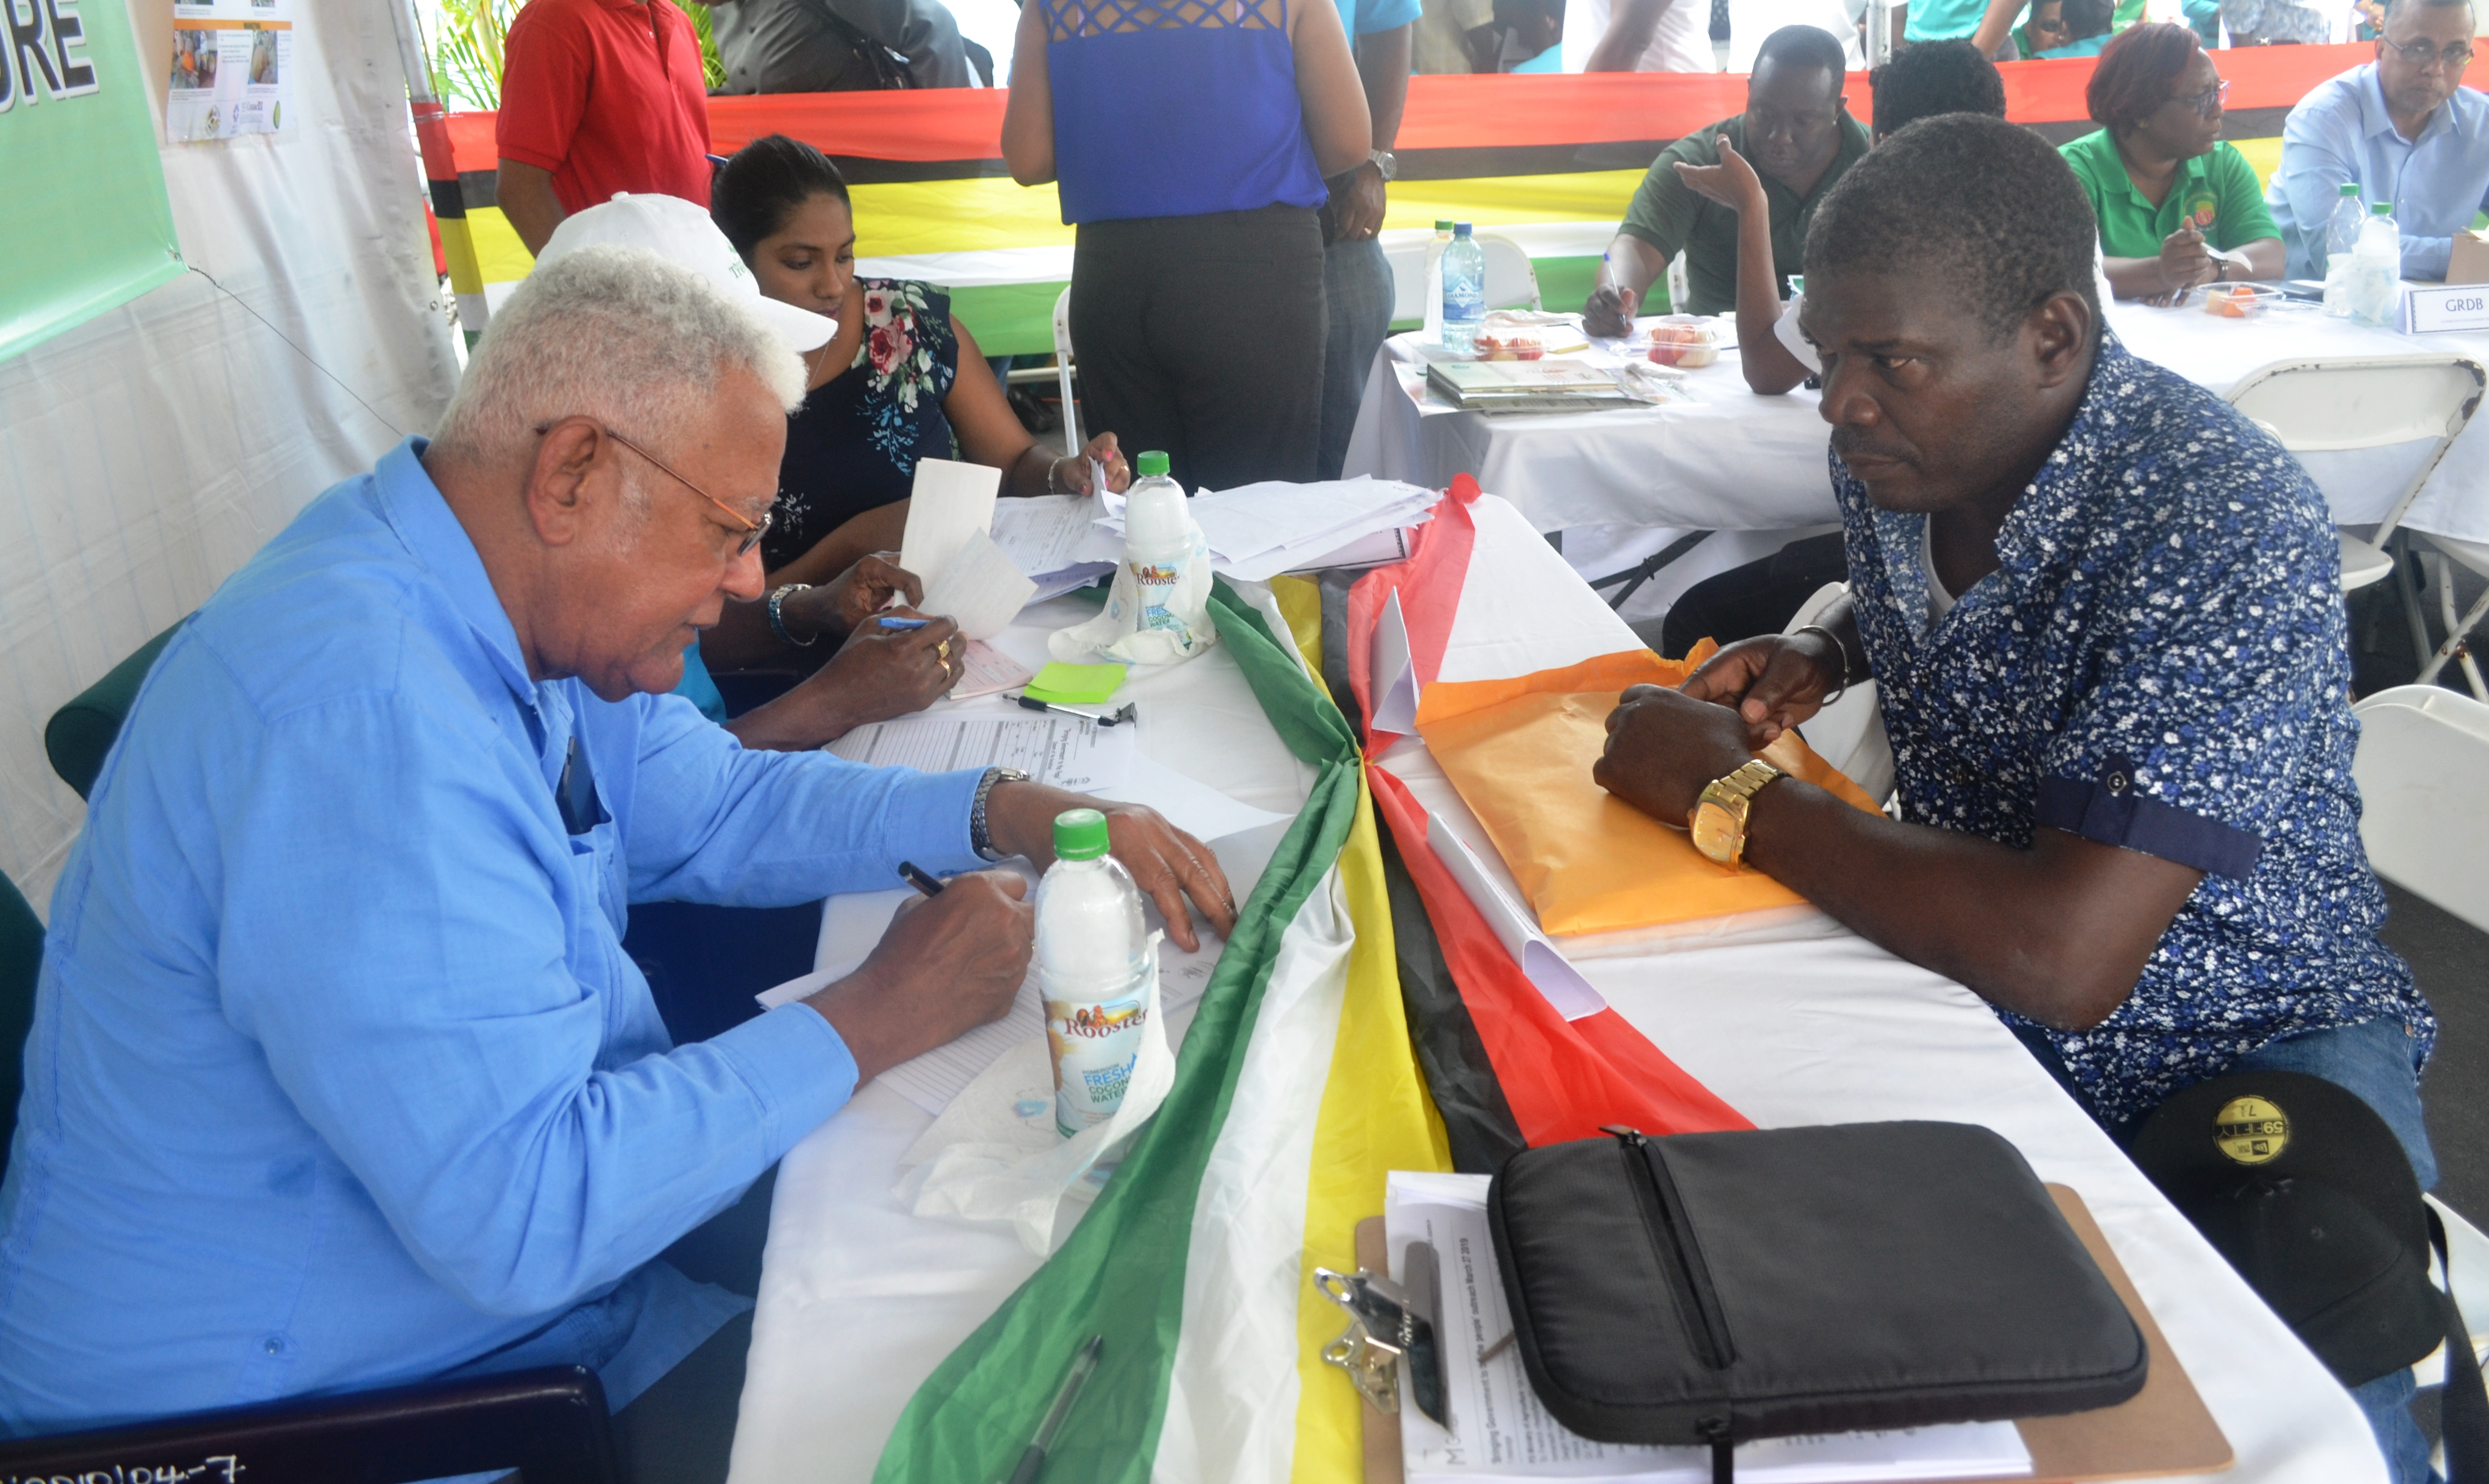 Agriculture Minister, Noel Holder during his engagement with an individual visiting the Ministry's booth